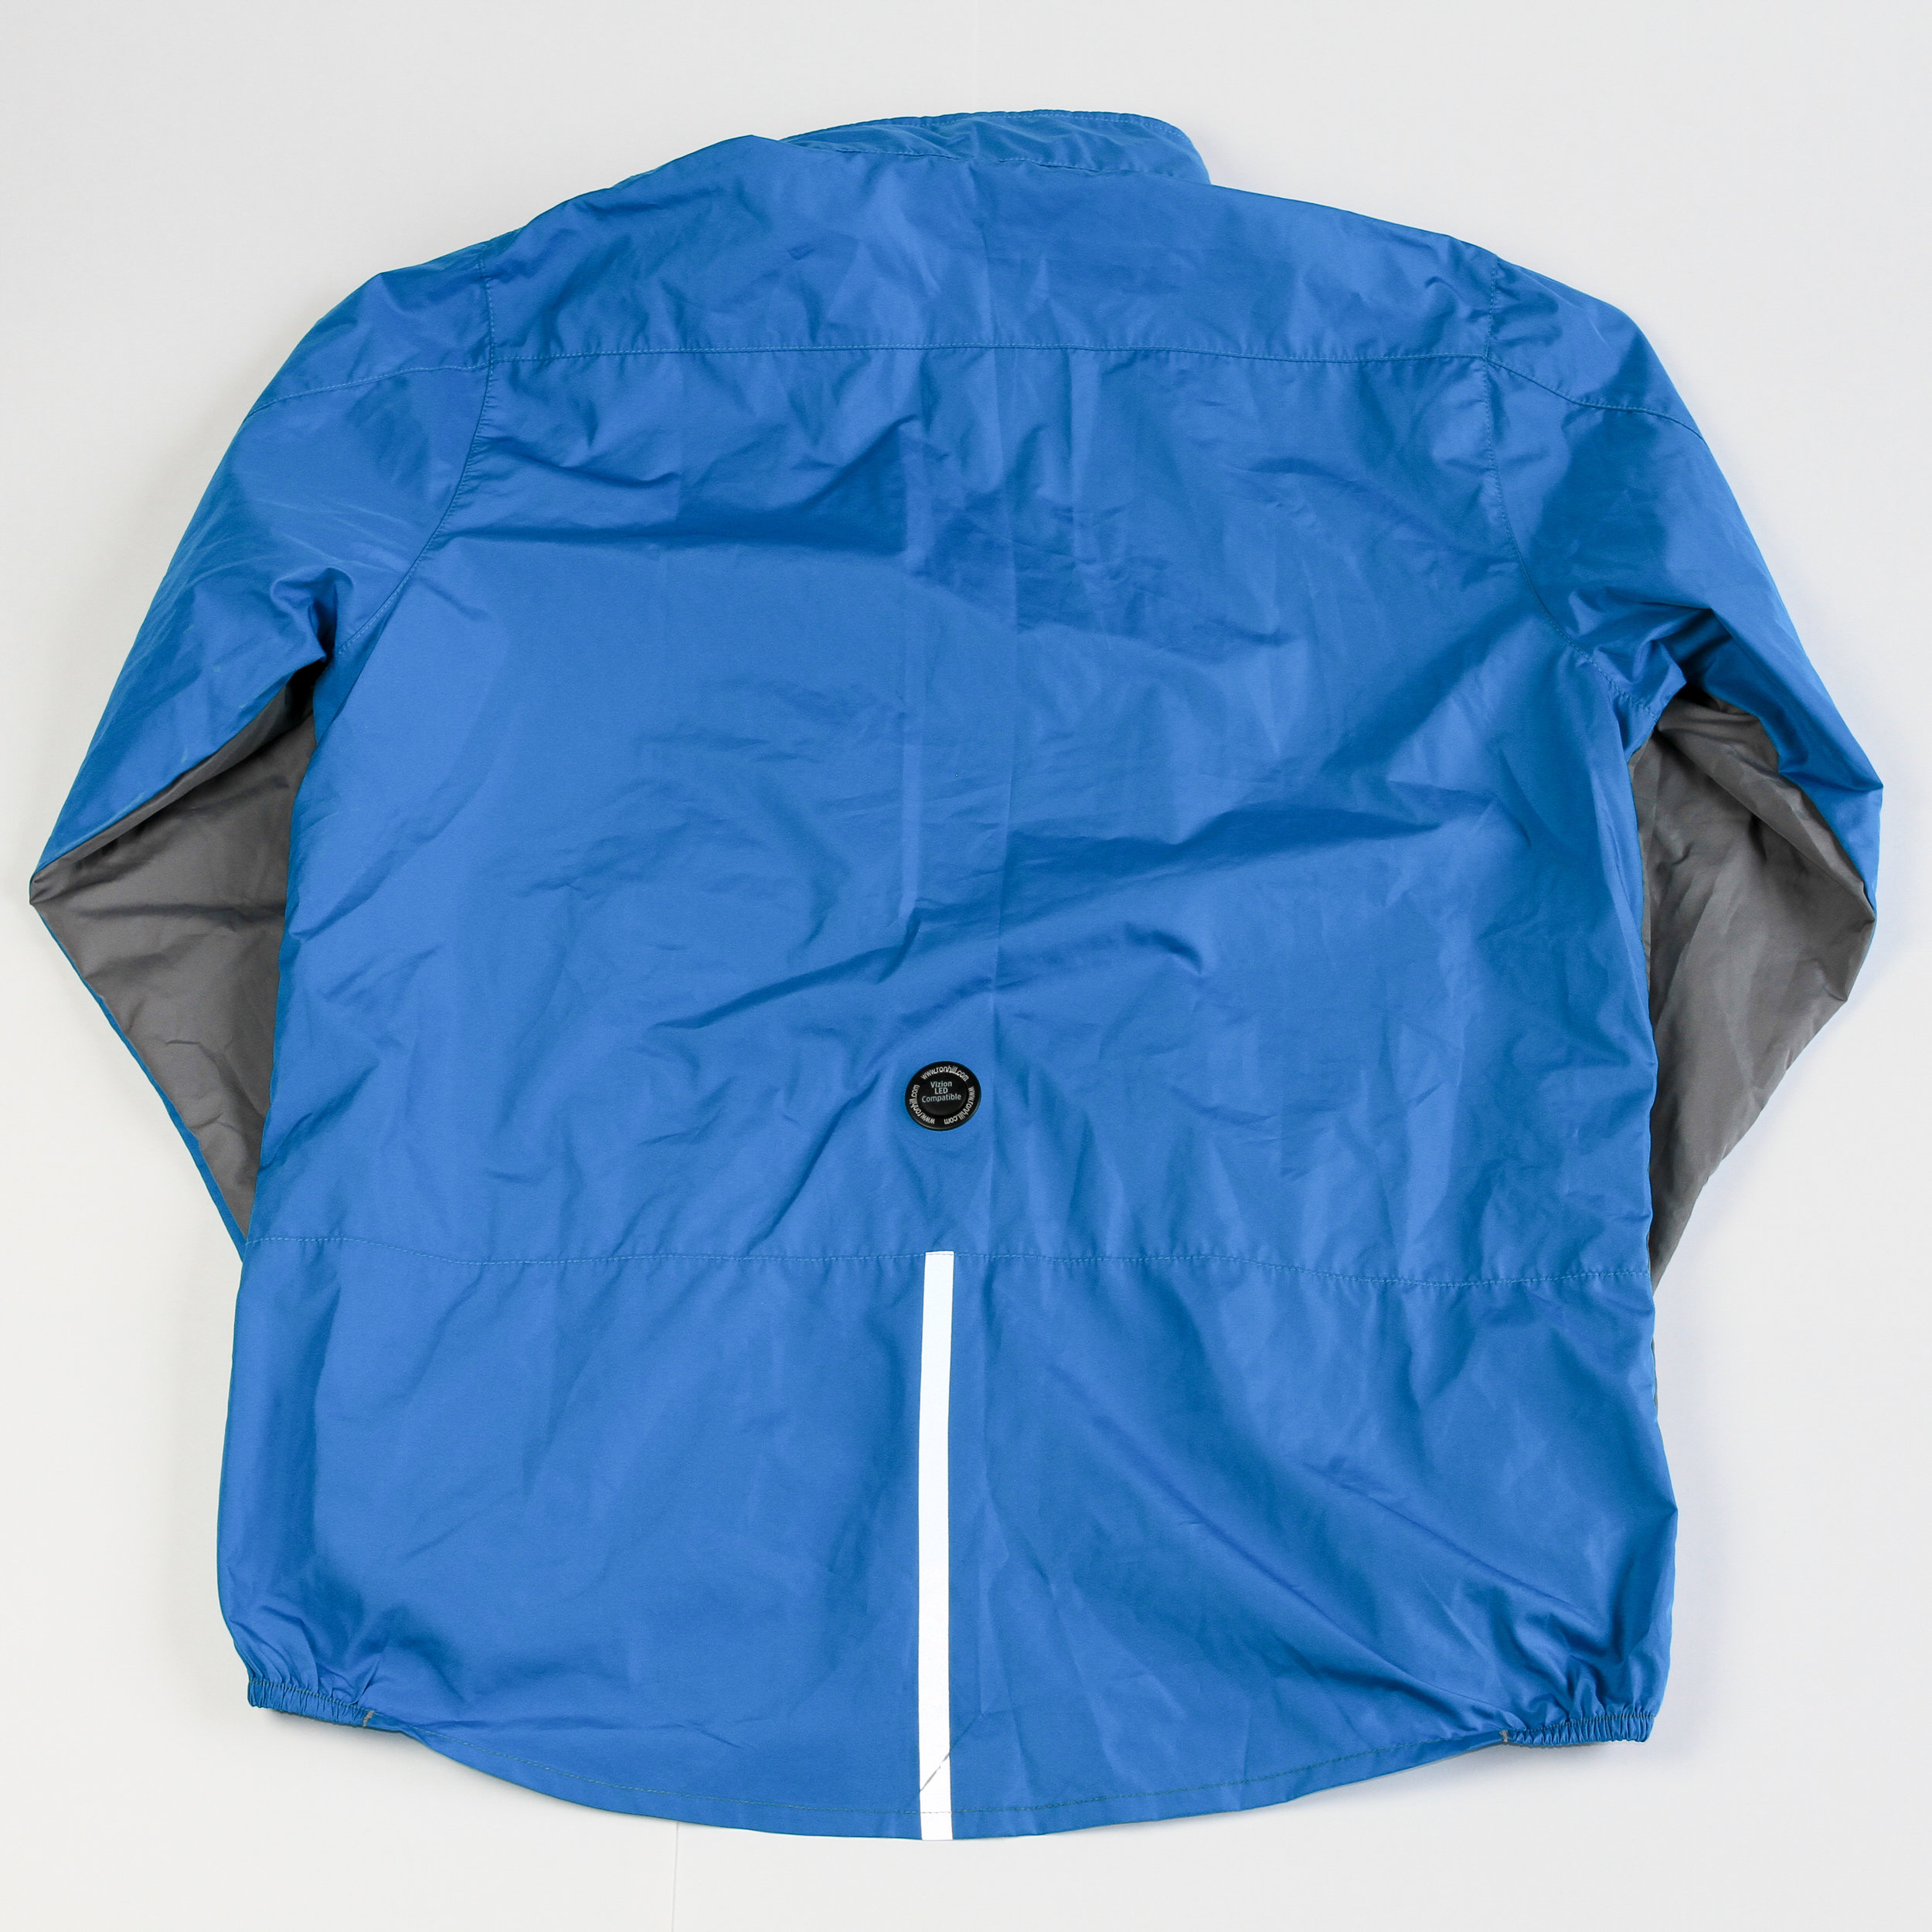 Ronhill newest jacket 1.JPG